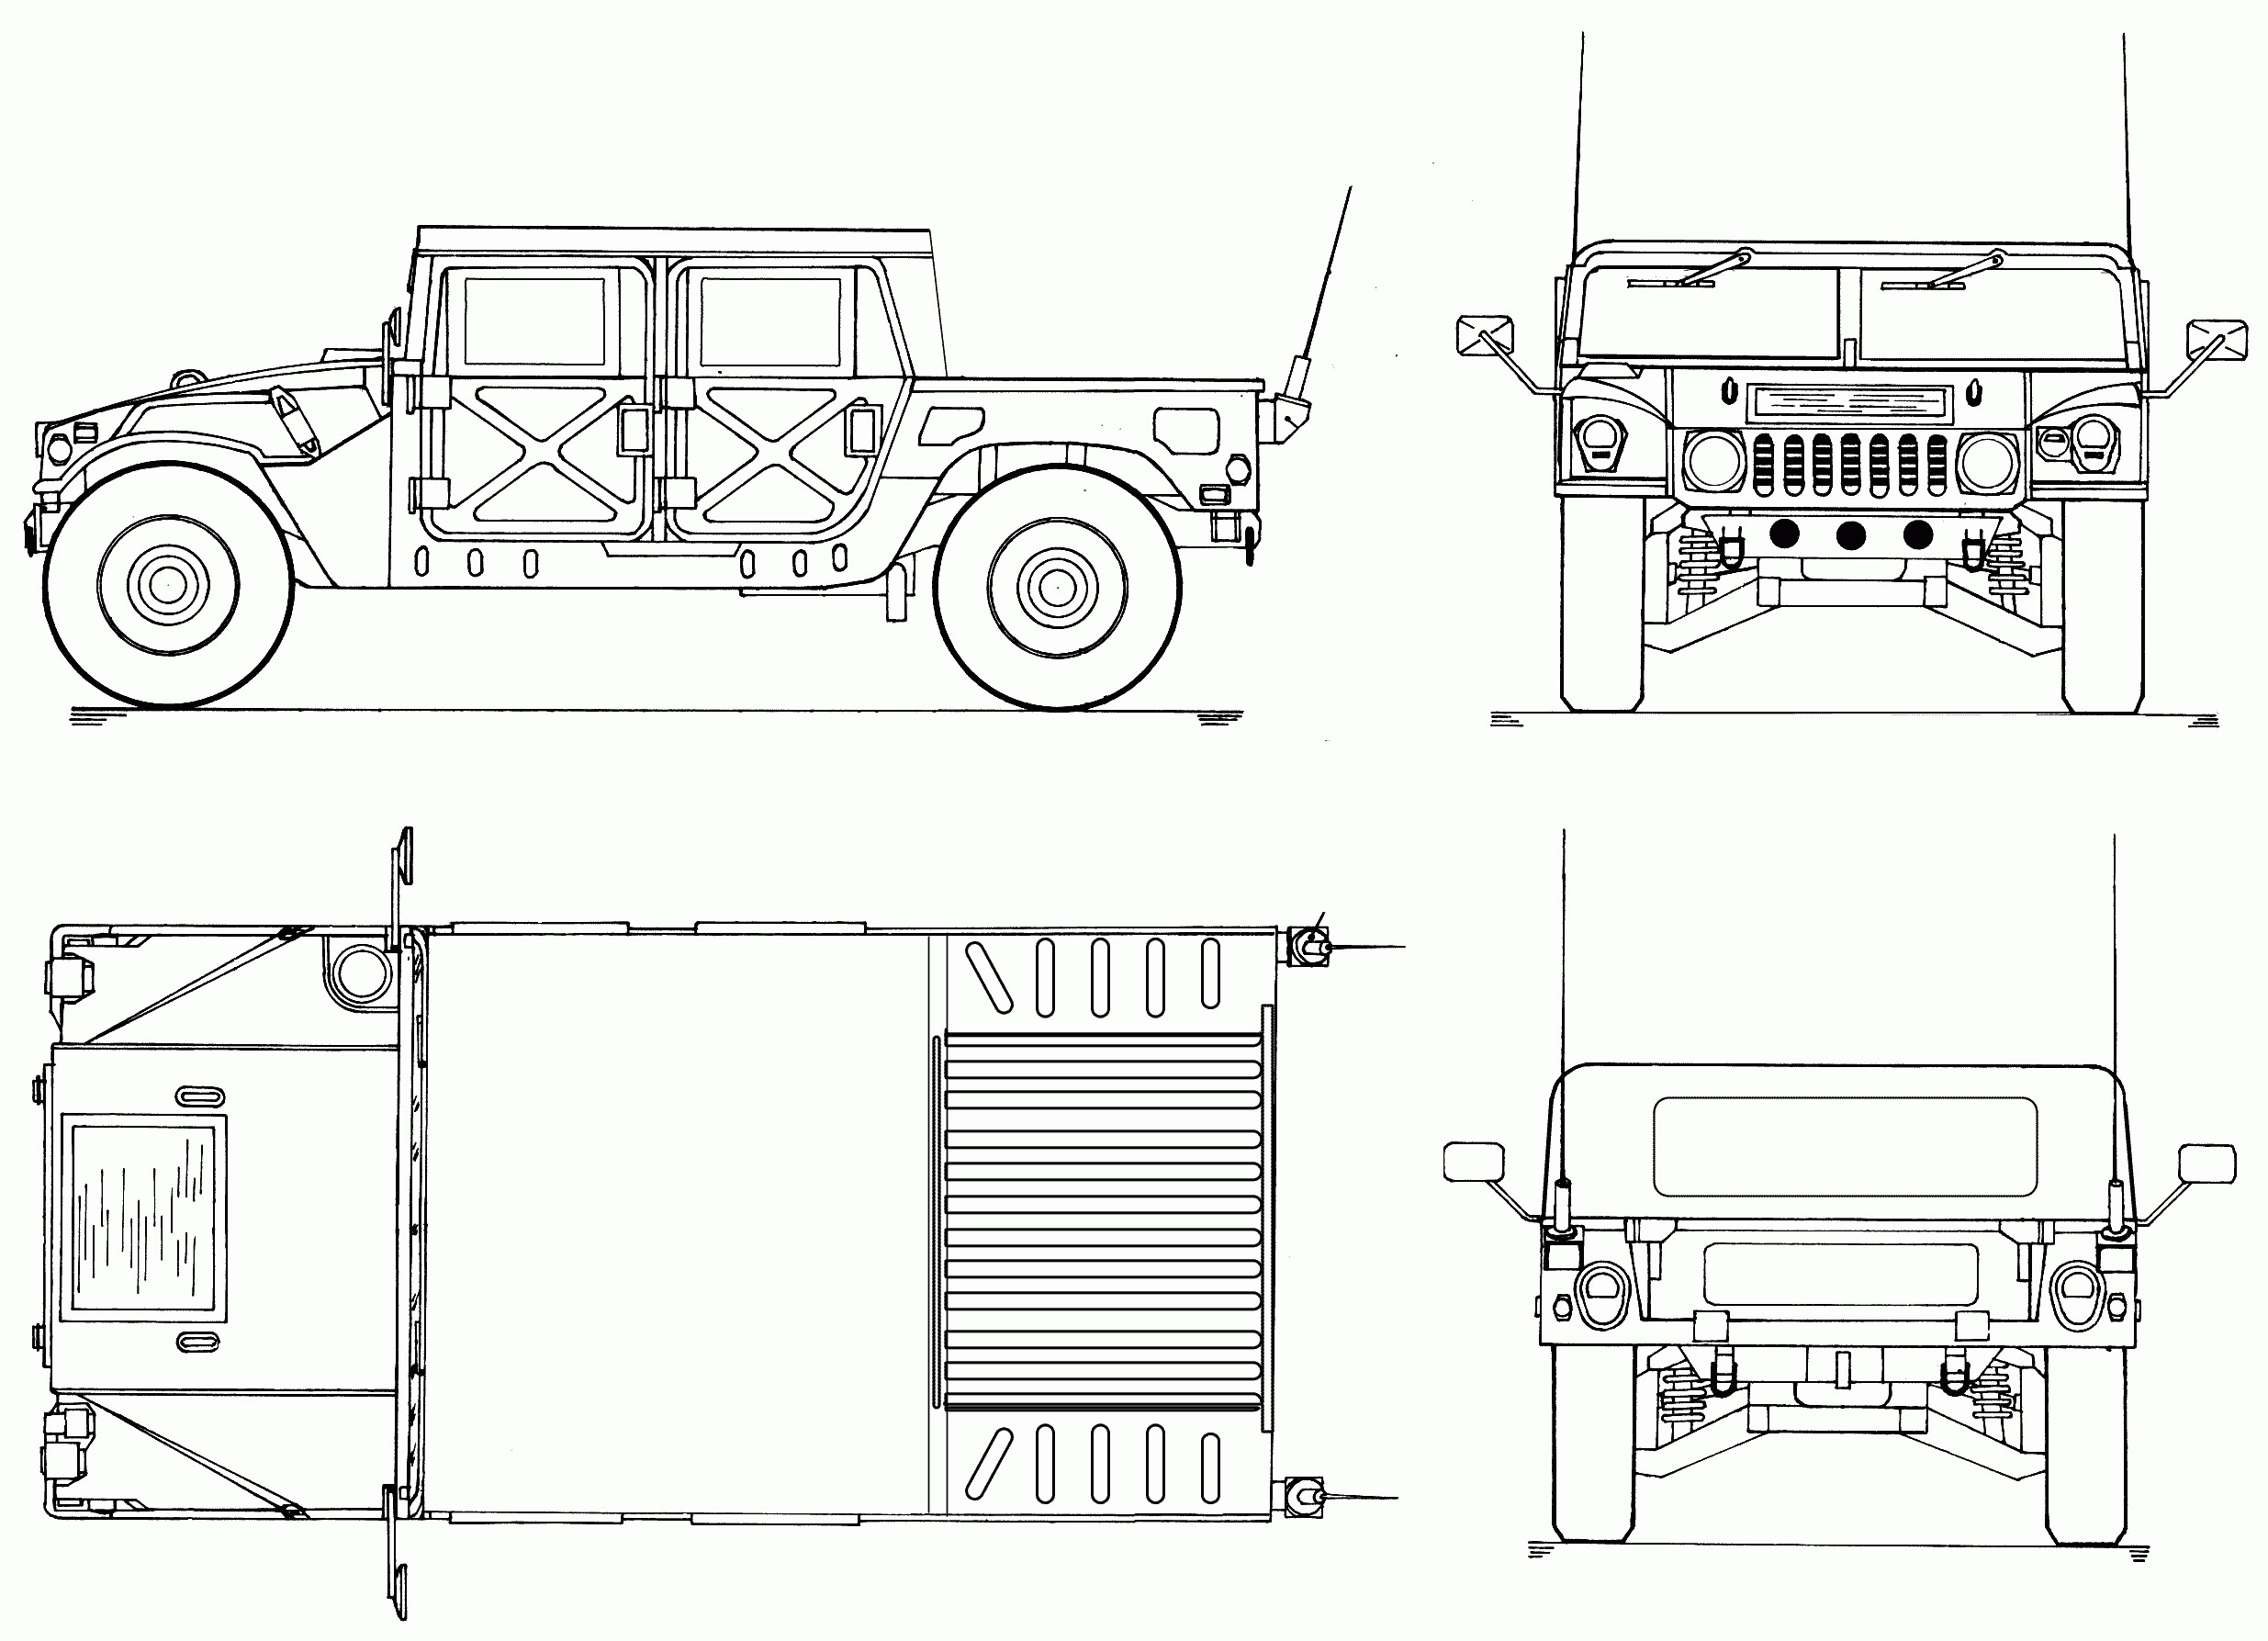 hummer h2 engine diagram